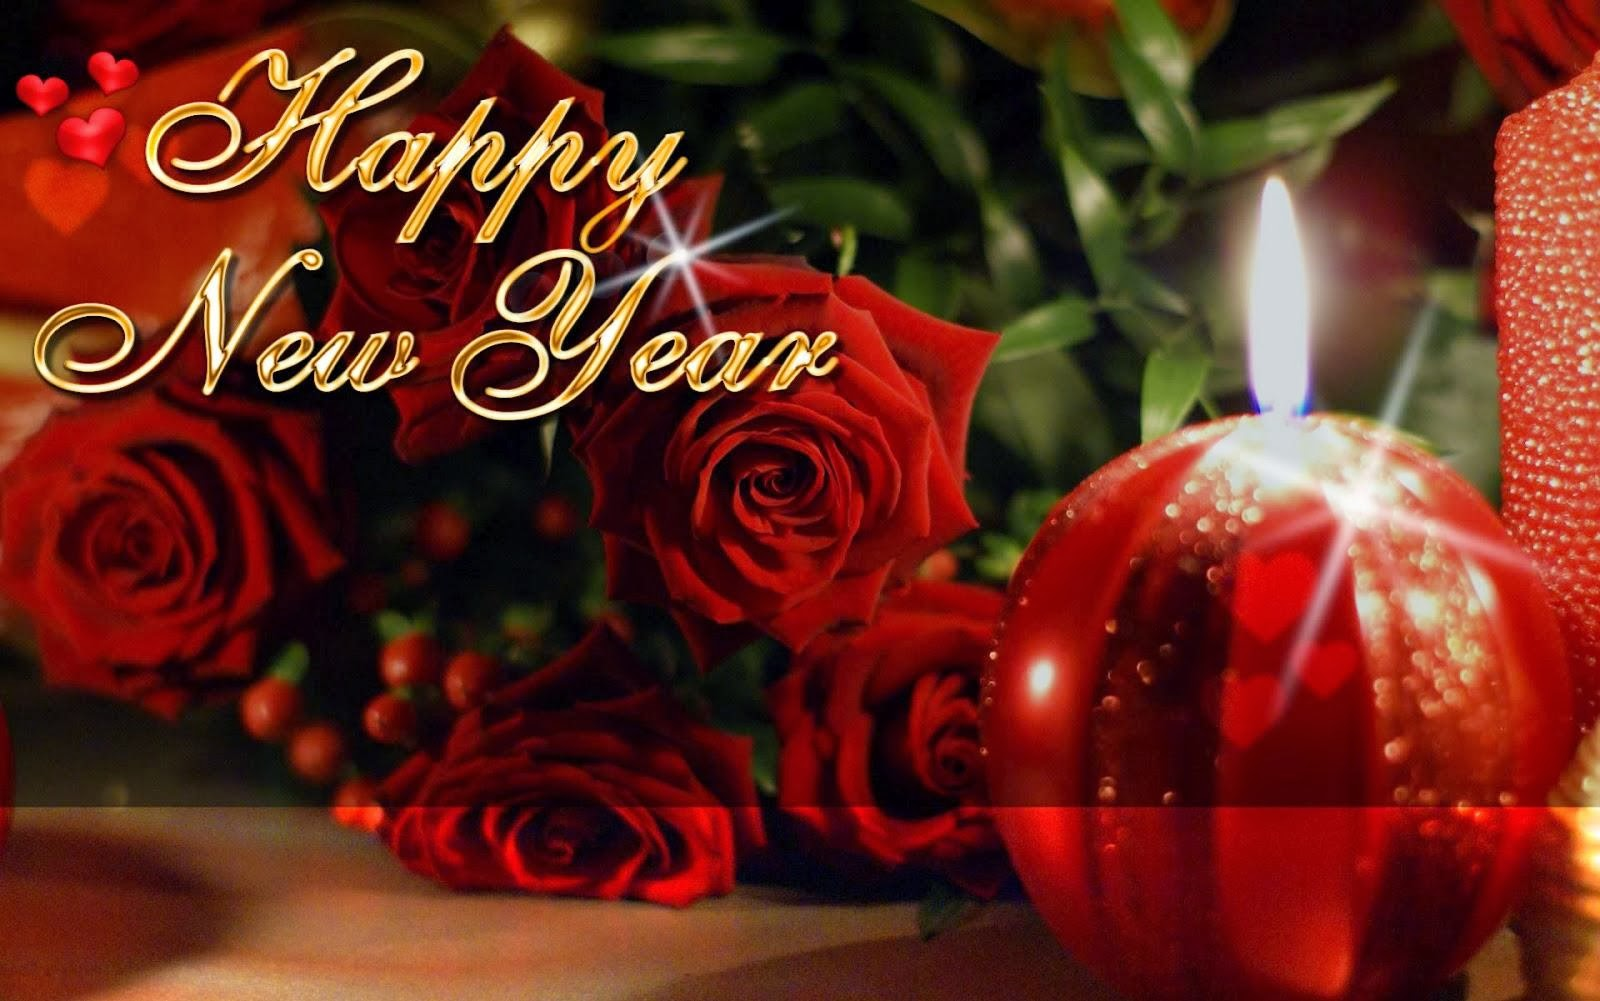 Happy New Year 2014 E Cards Wallpapers Download November 2013